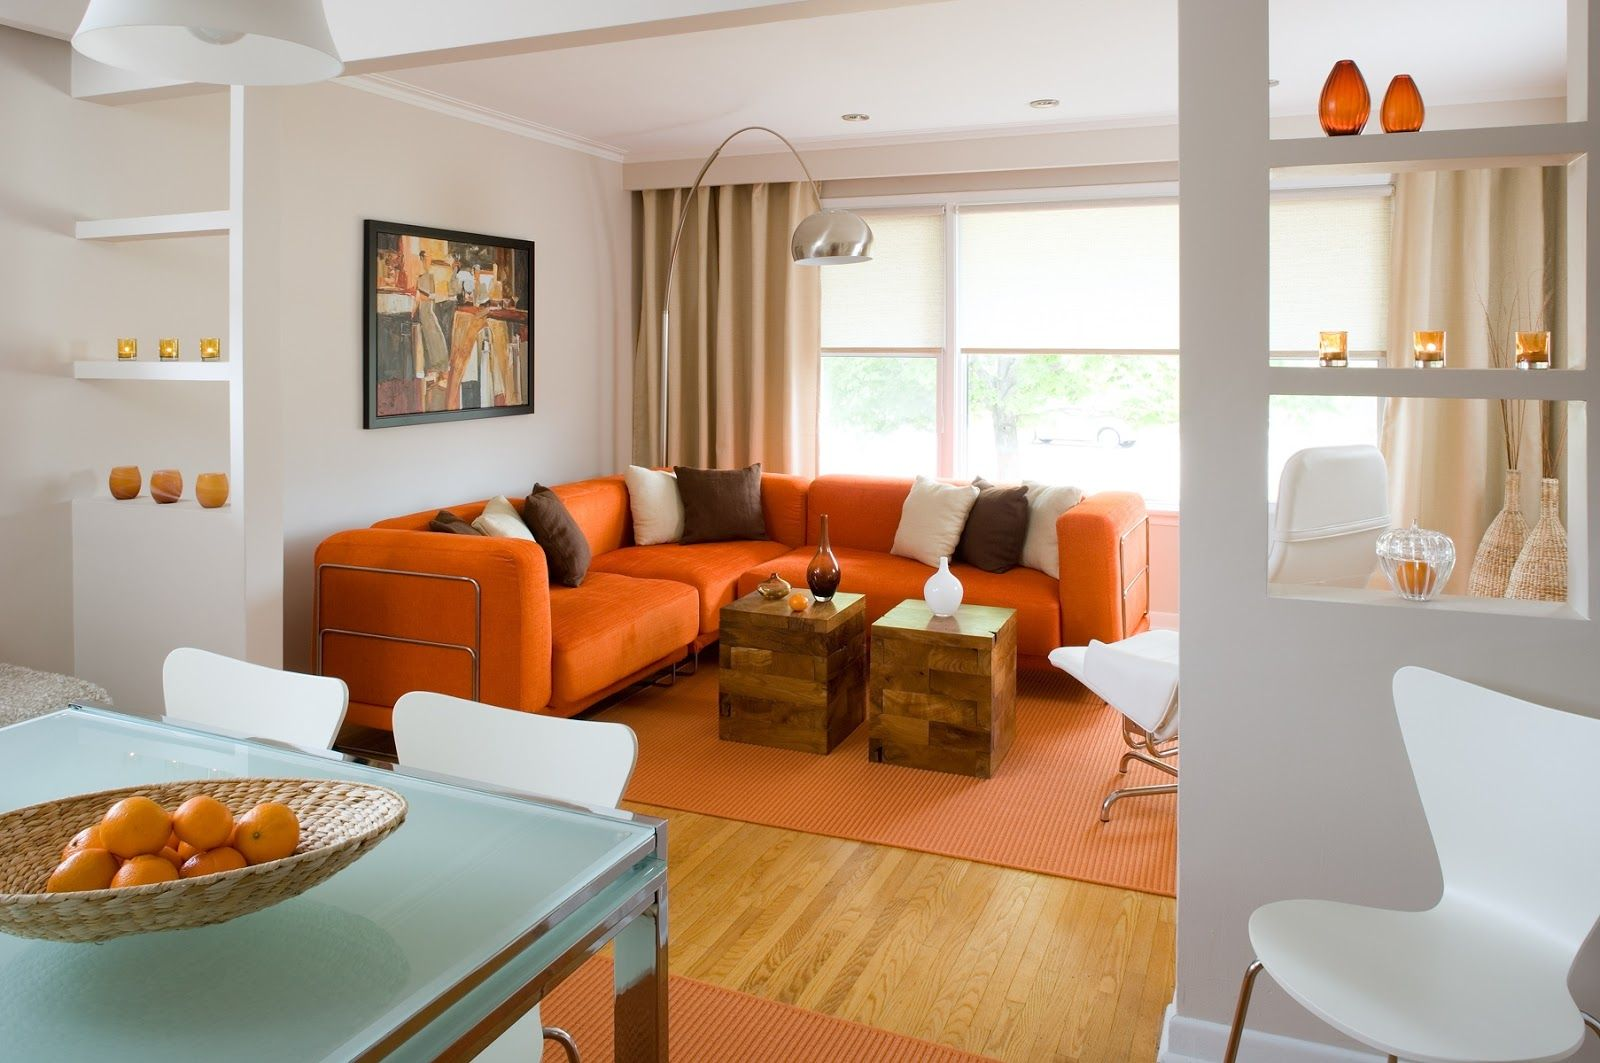 Living Room Ideas Orange Sofa furniture. double square coffee table plus fiber glass chair and